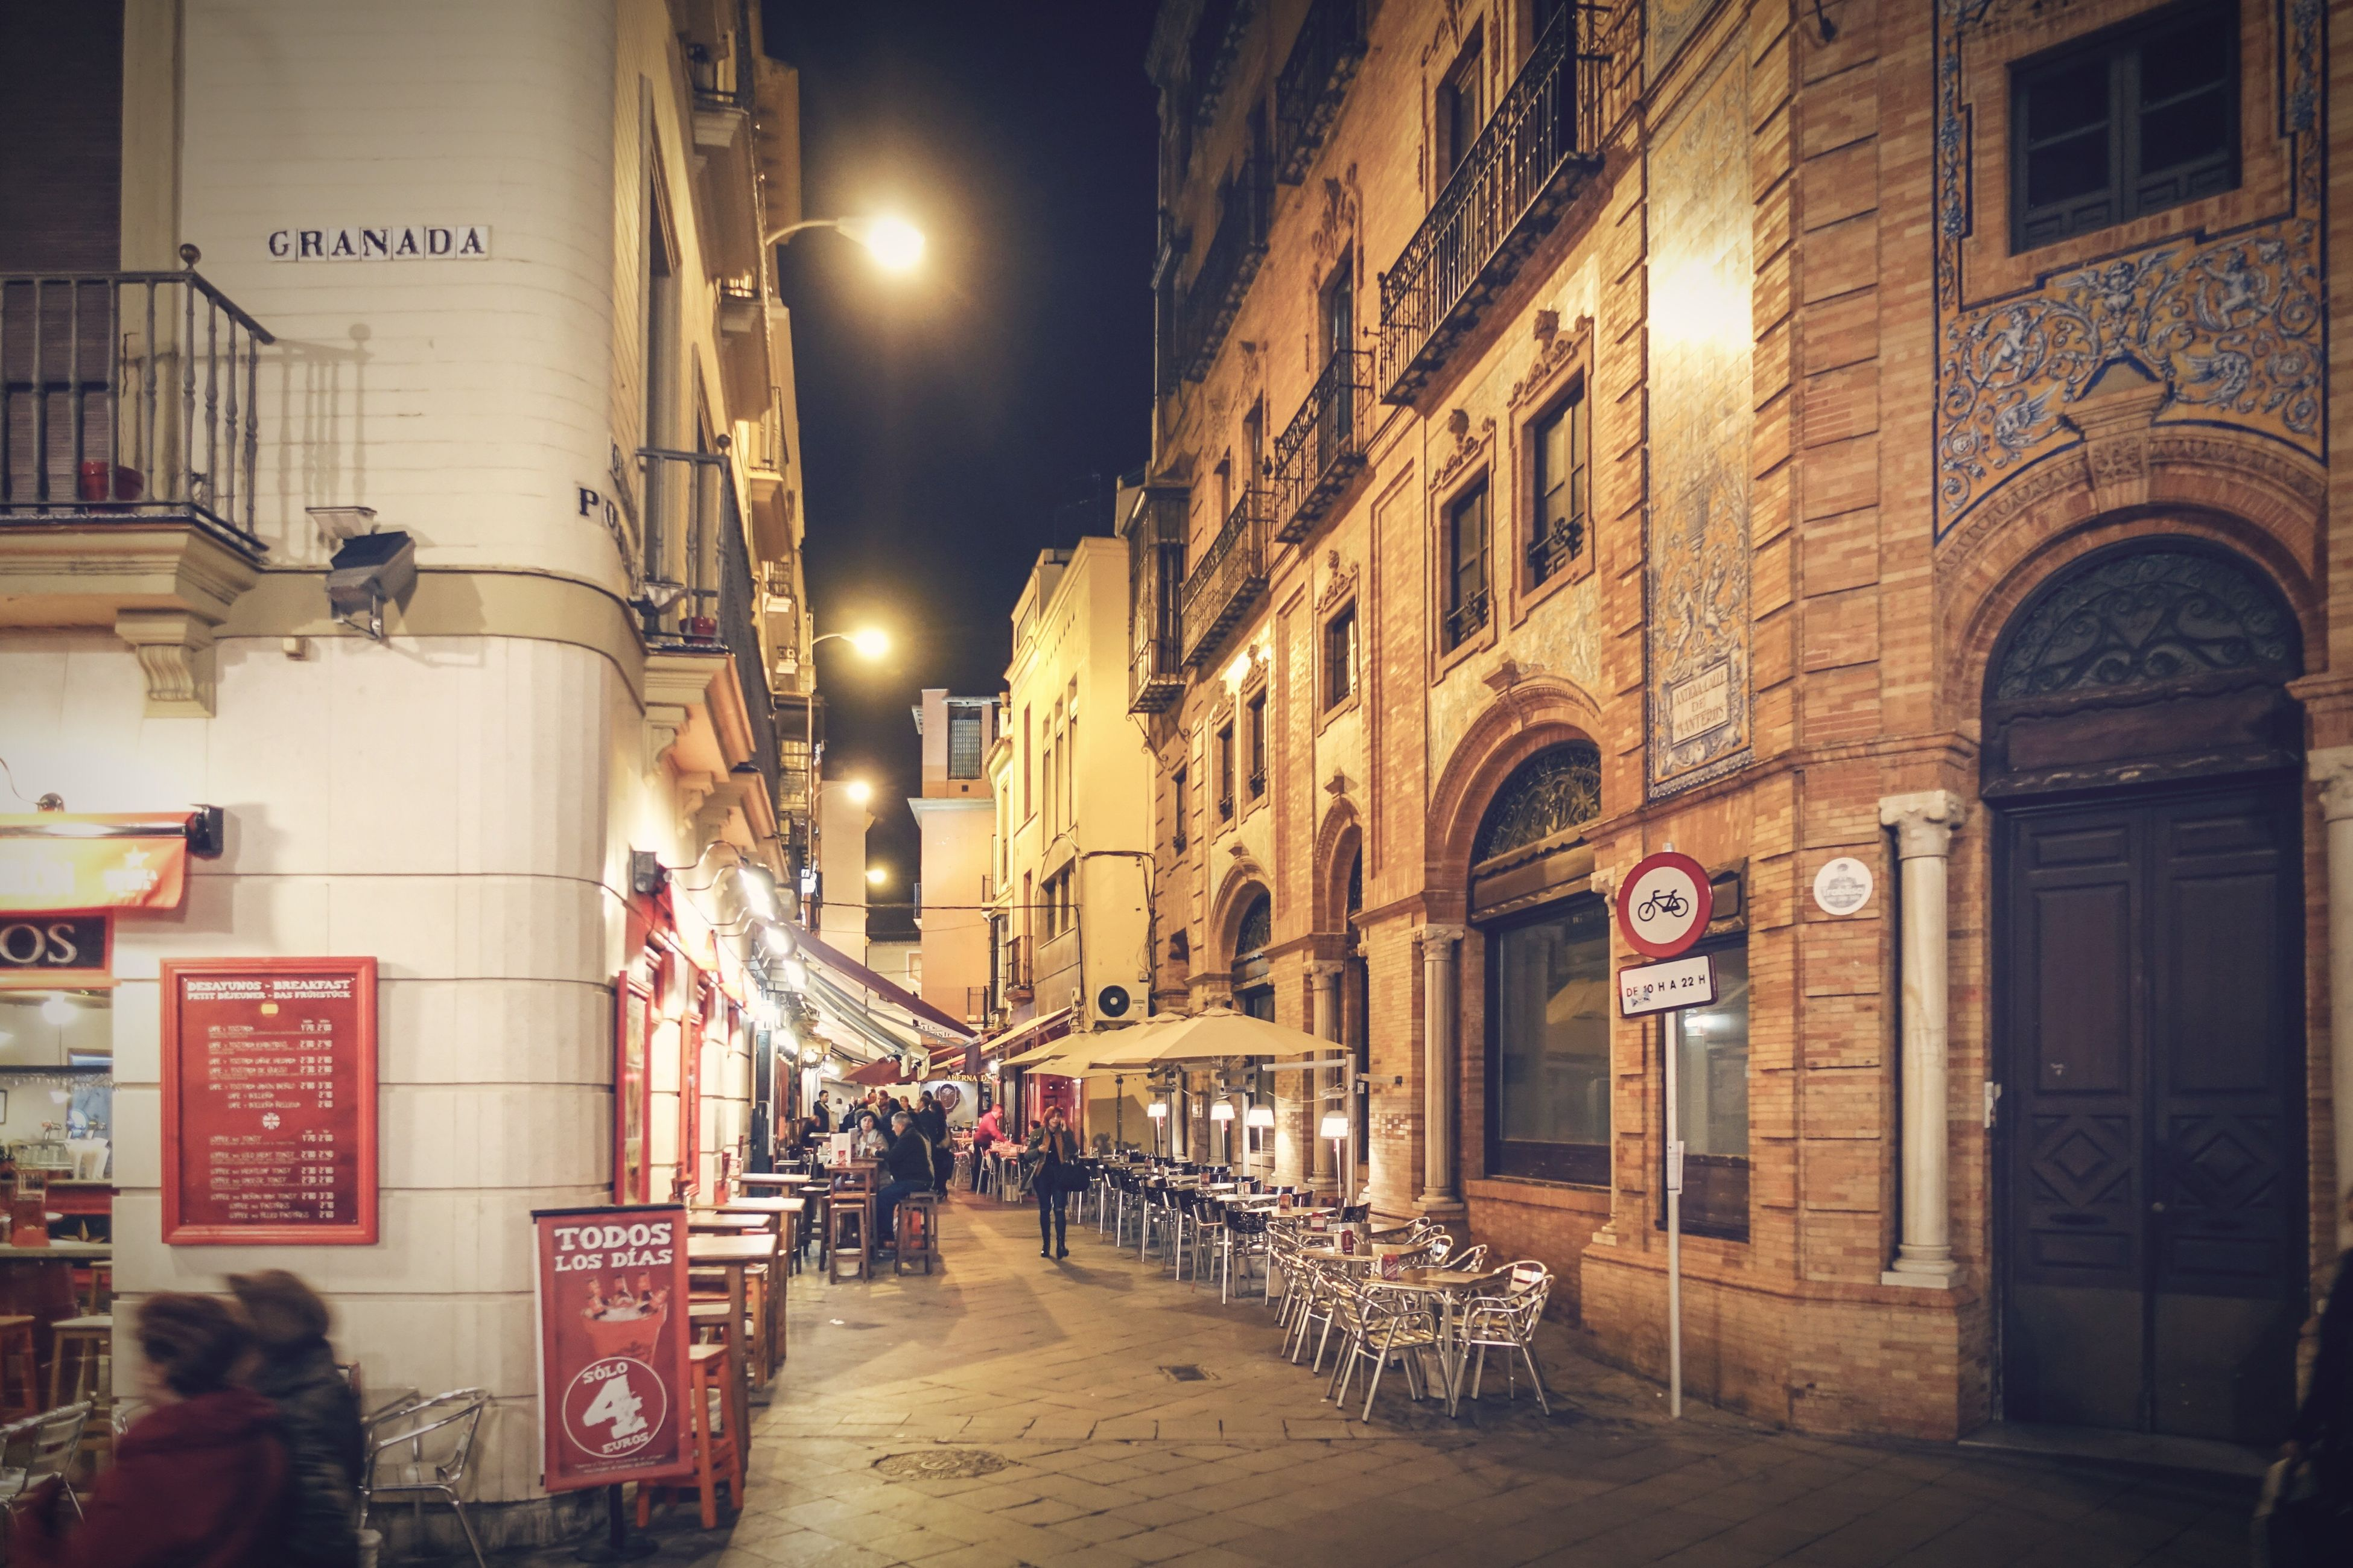 building exterior, architecture, built structure, illuminated, night, street, city, the way forward, street light, lighting equipment, building, text, walking, residential building, city life, incidental people, residential structure, alley, city street